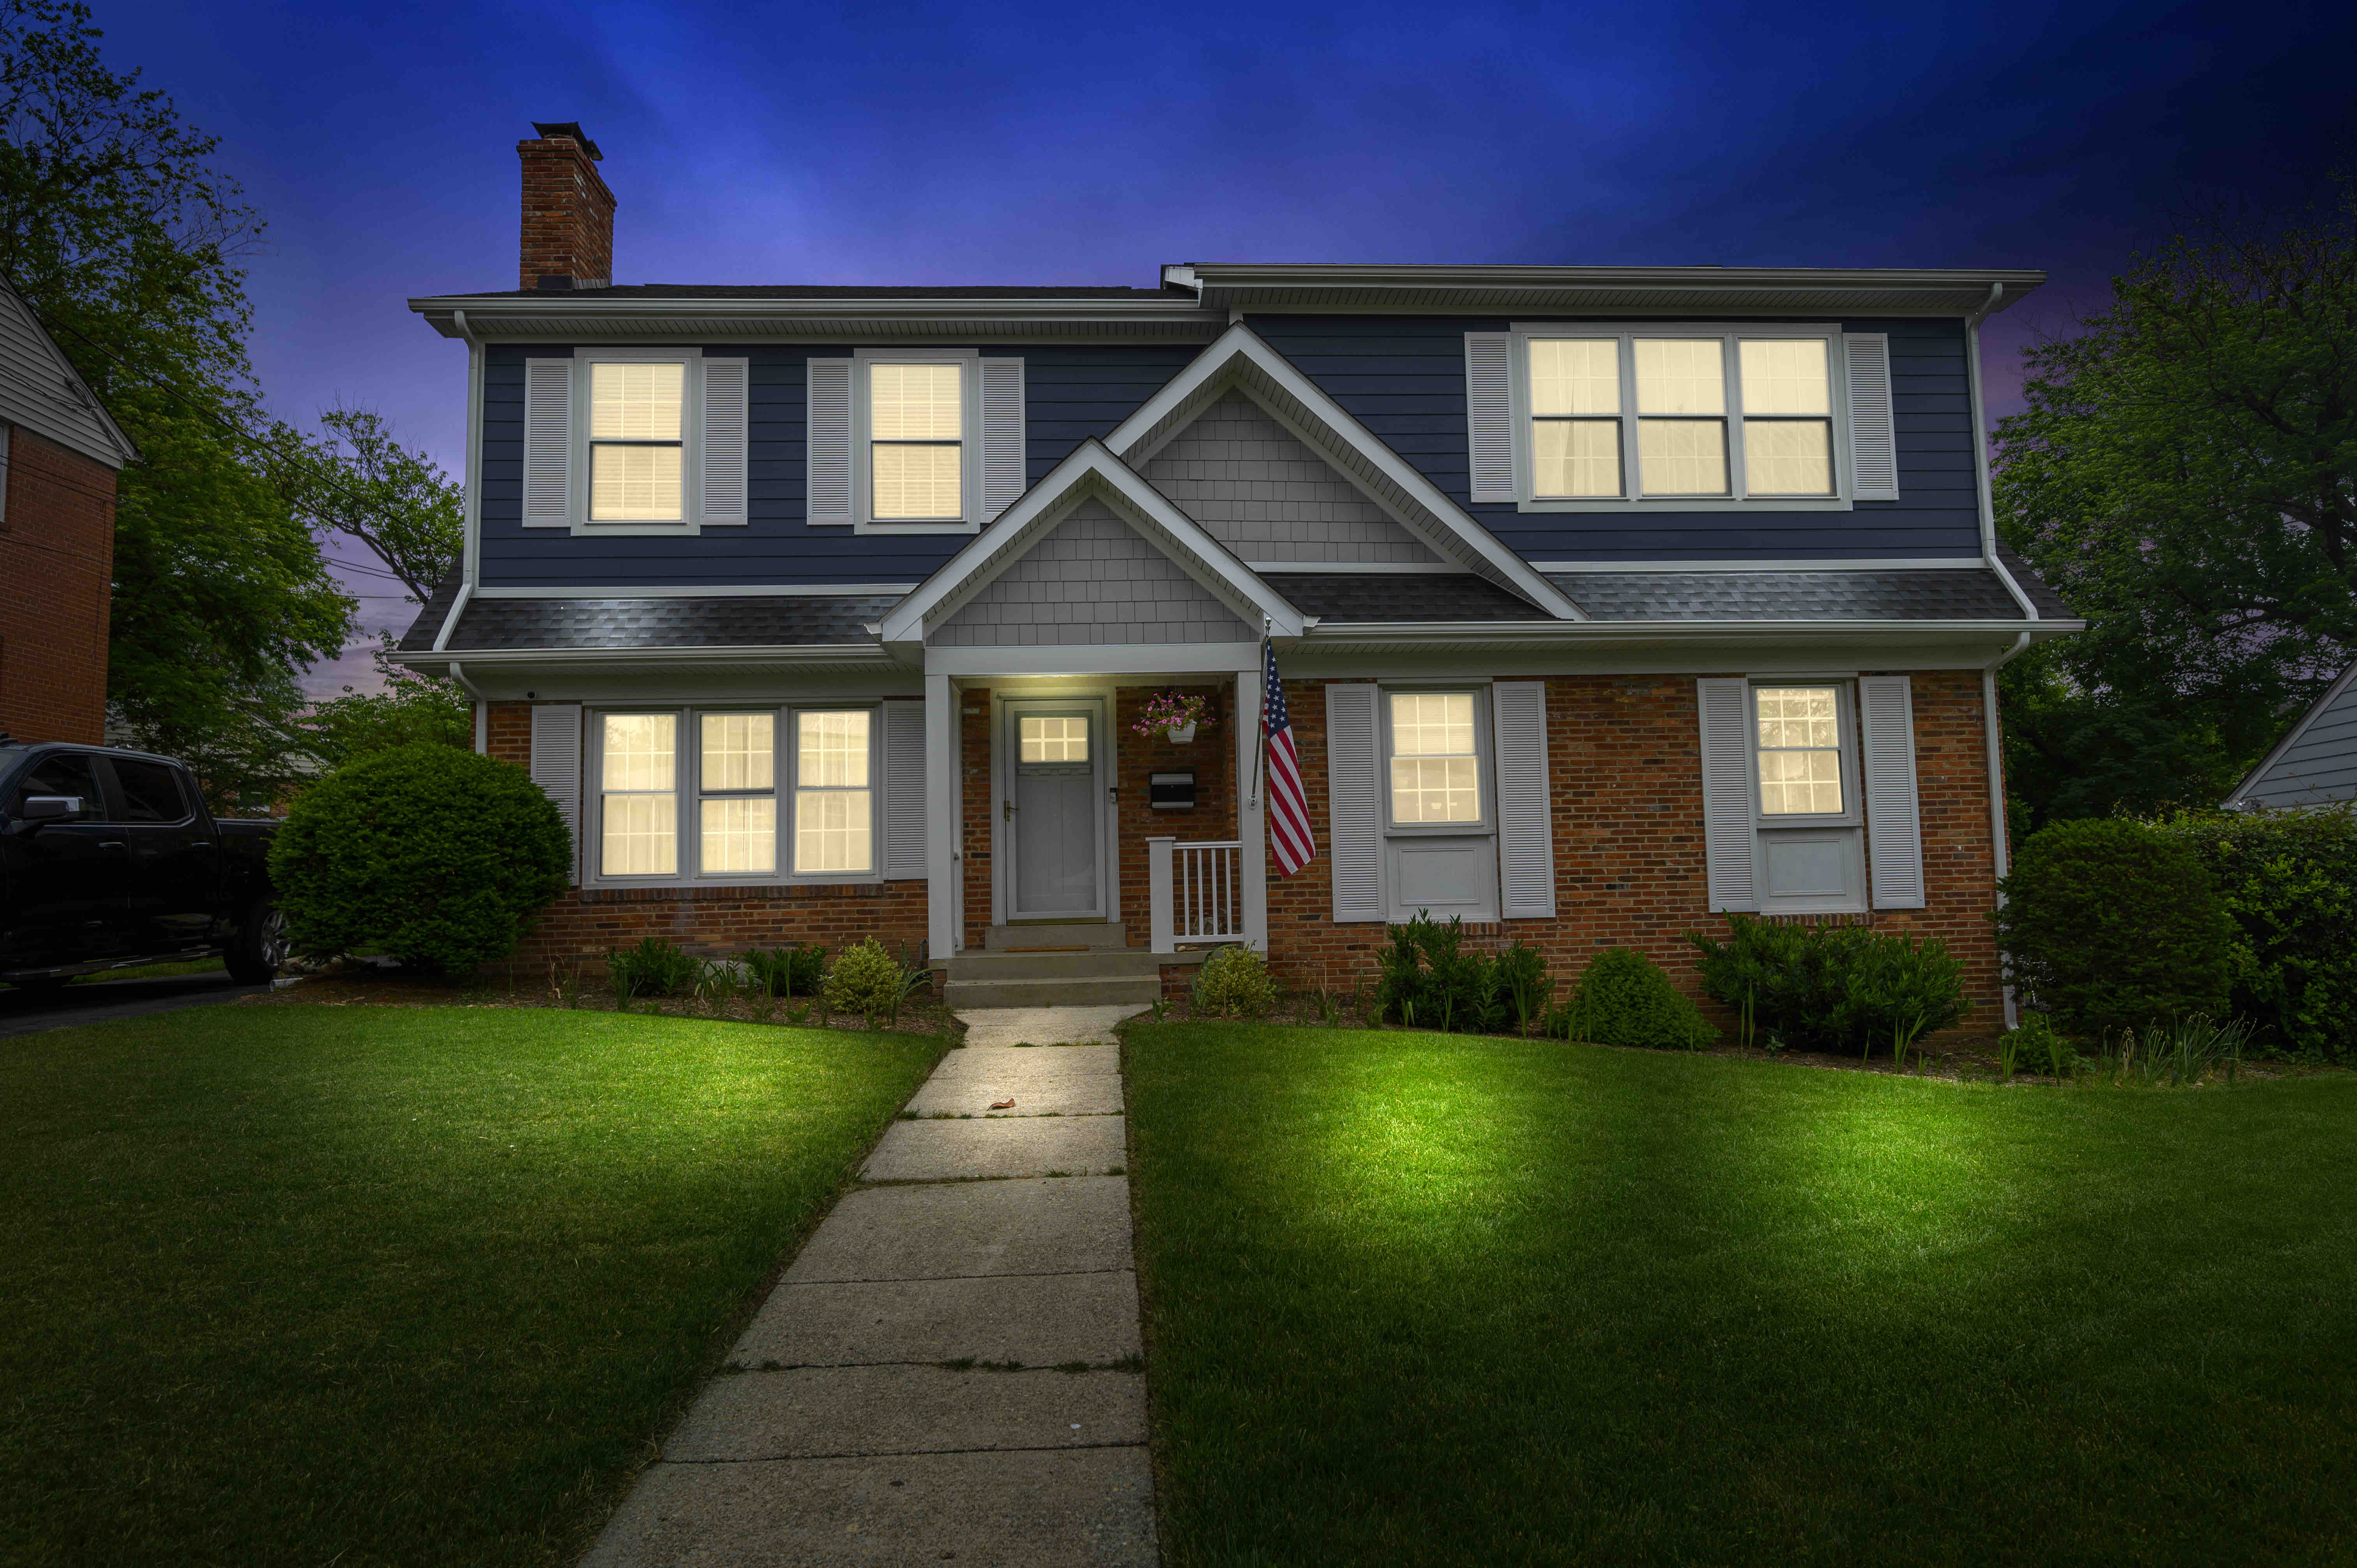 With an entire second floor pop top addition, this Arlington home is now spacious and roomy for this growing family.